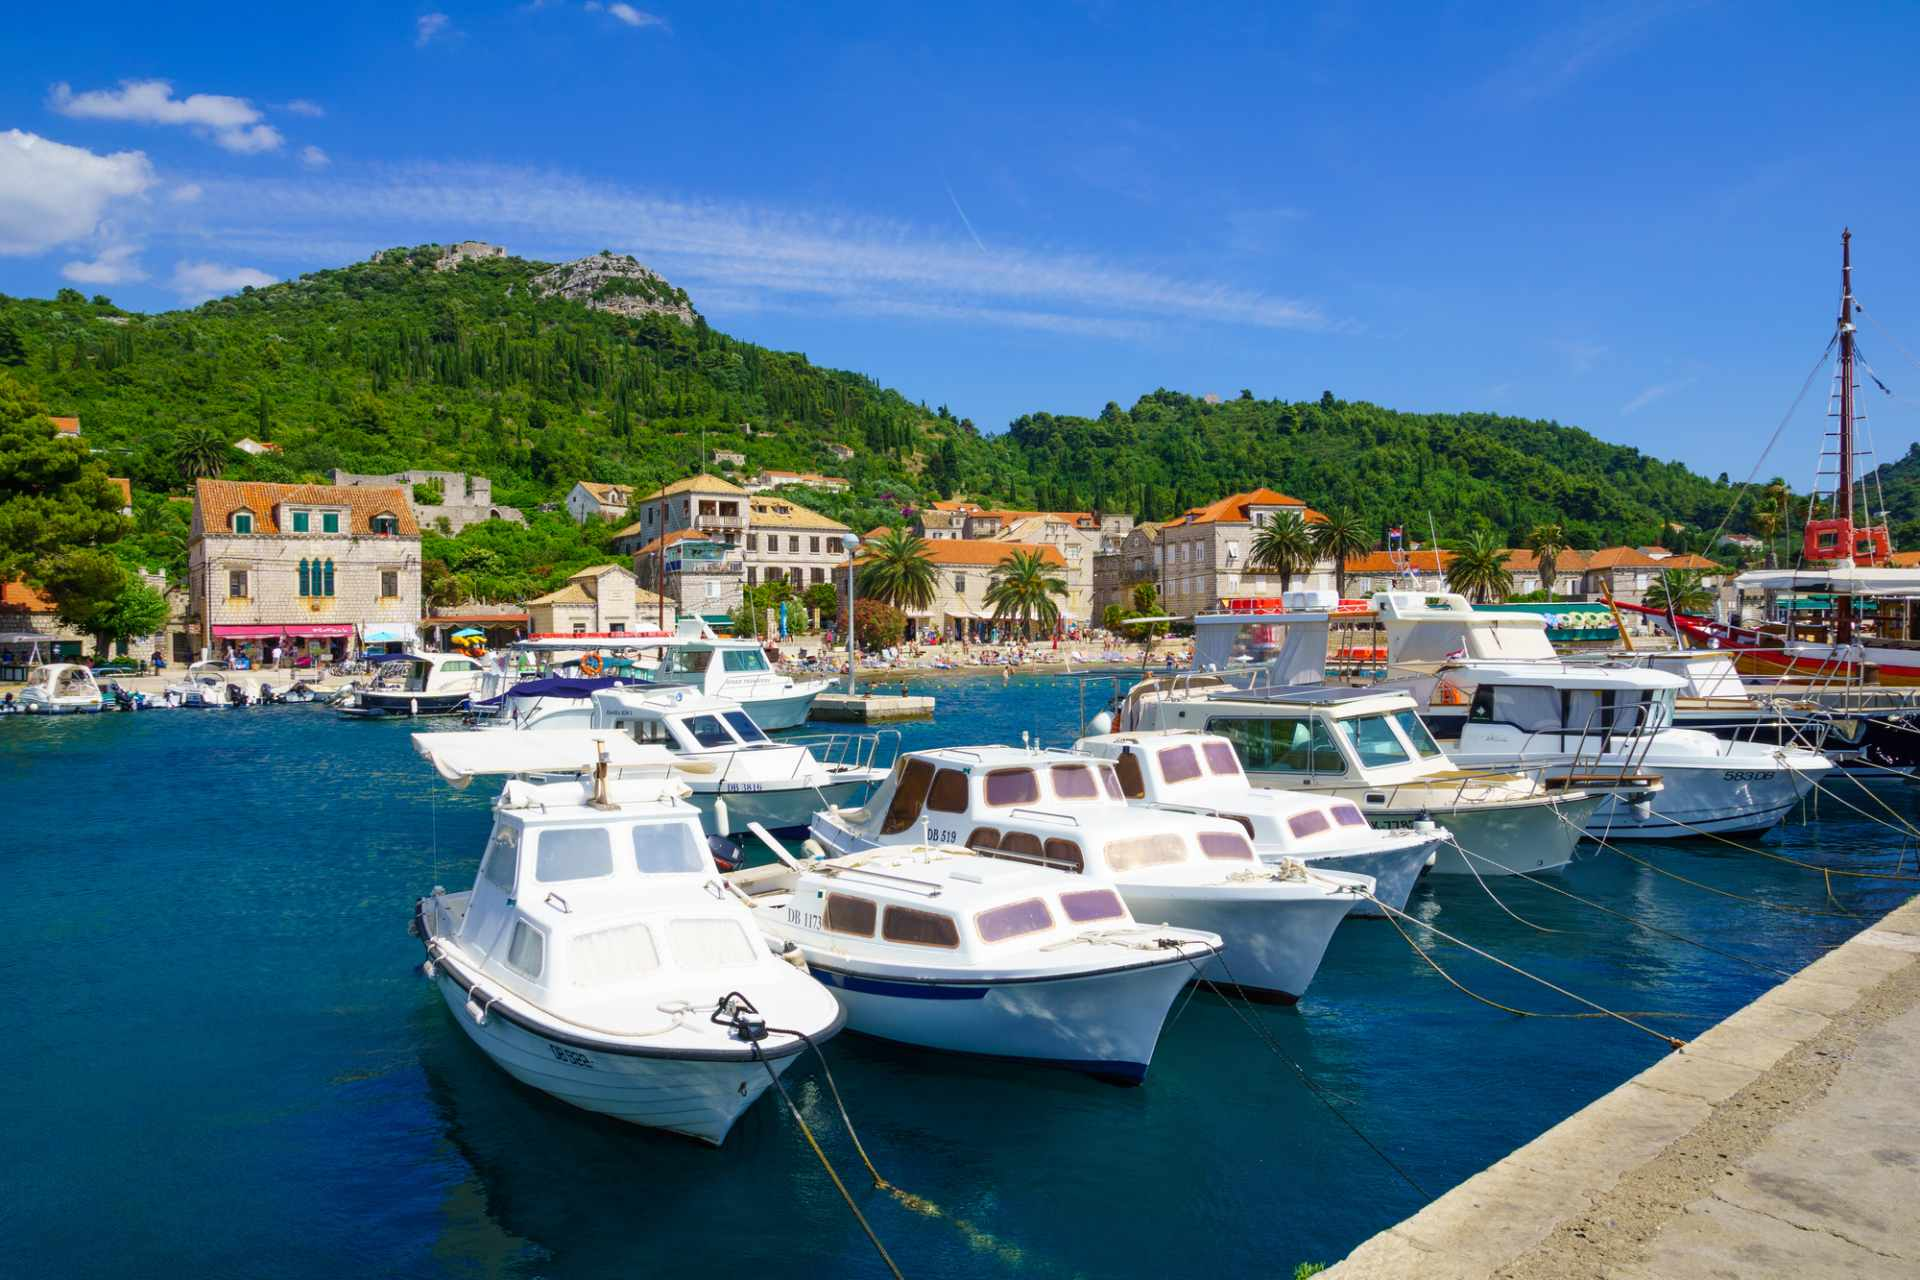 white-boats-on-blue-sea-at-lopud-harbour-with-hills-in-background-3-days-in-dubrovnik-itinerary